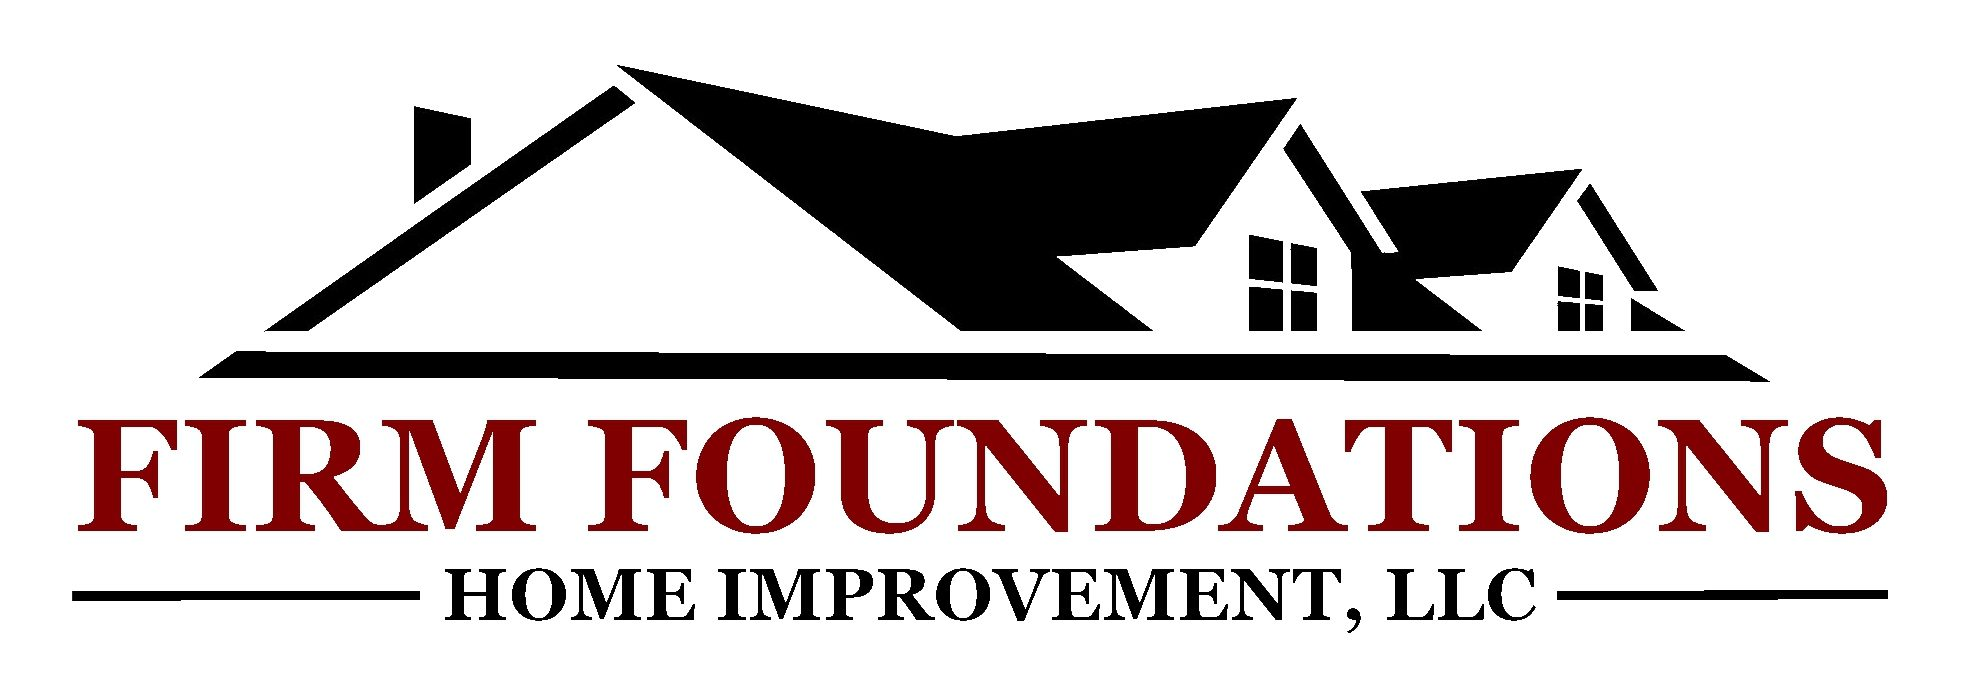 Firm Foundations Home Improvement, LLC